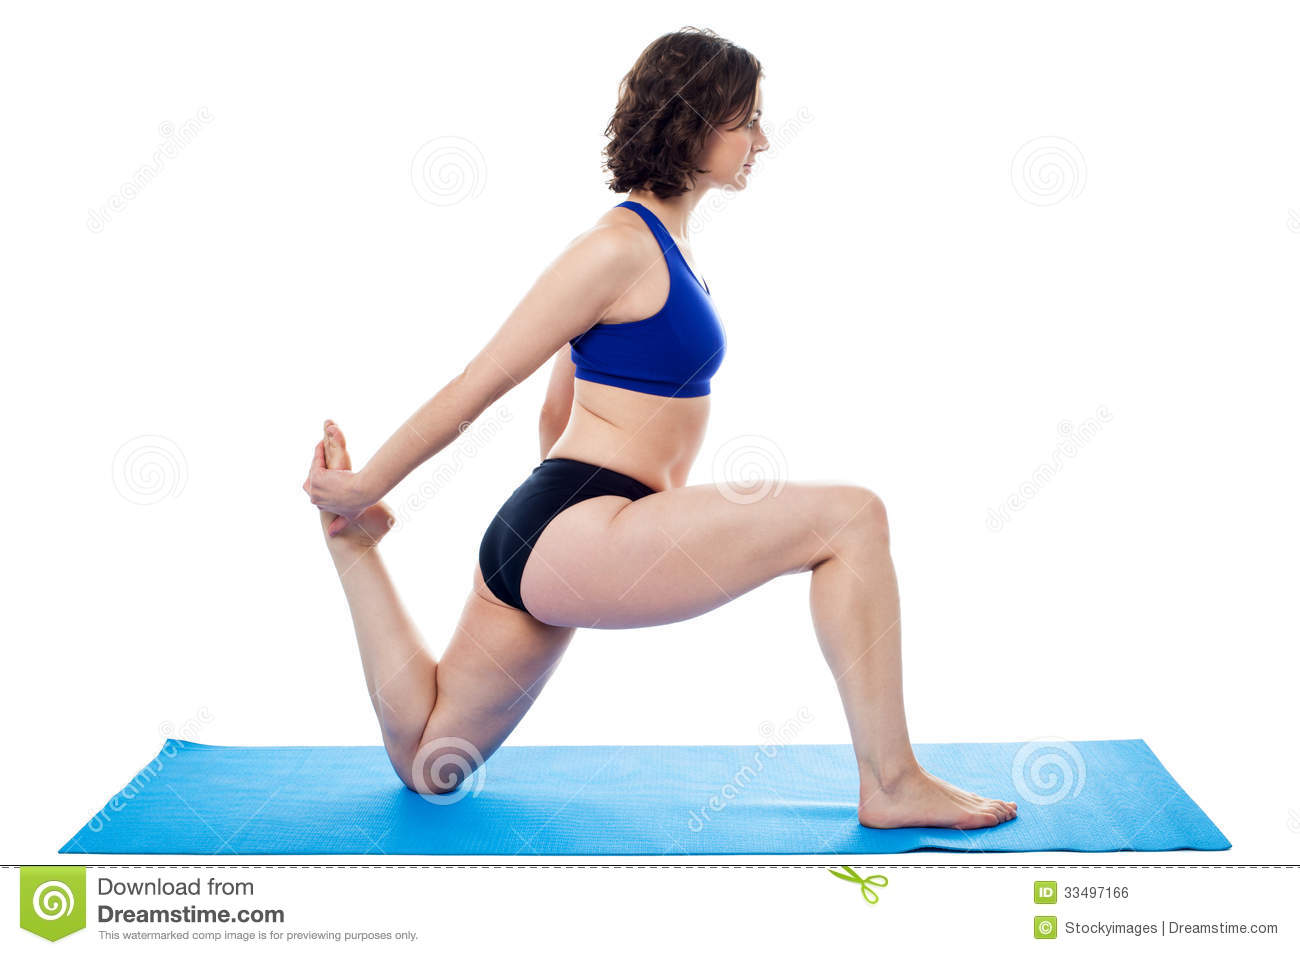 Its Workout Time Royalty Free Stock Image - Image: 33497166